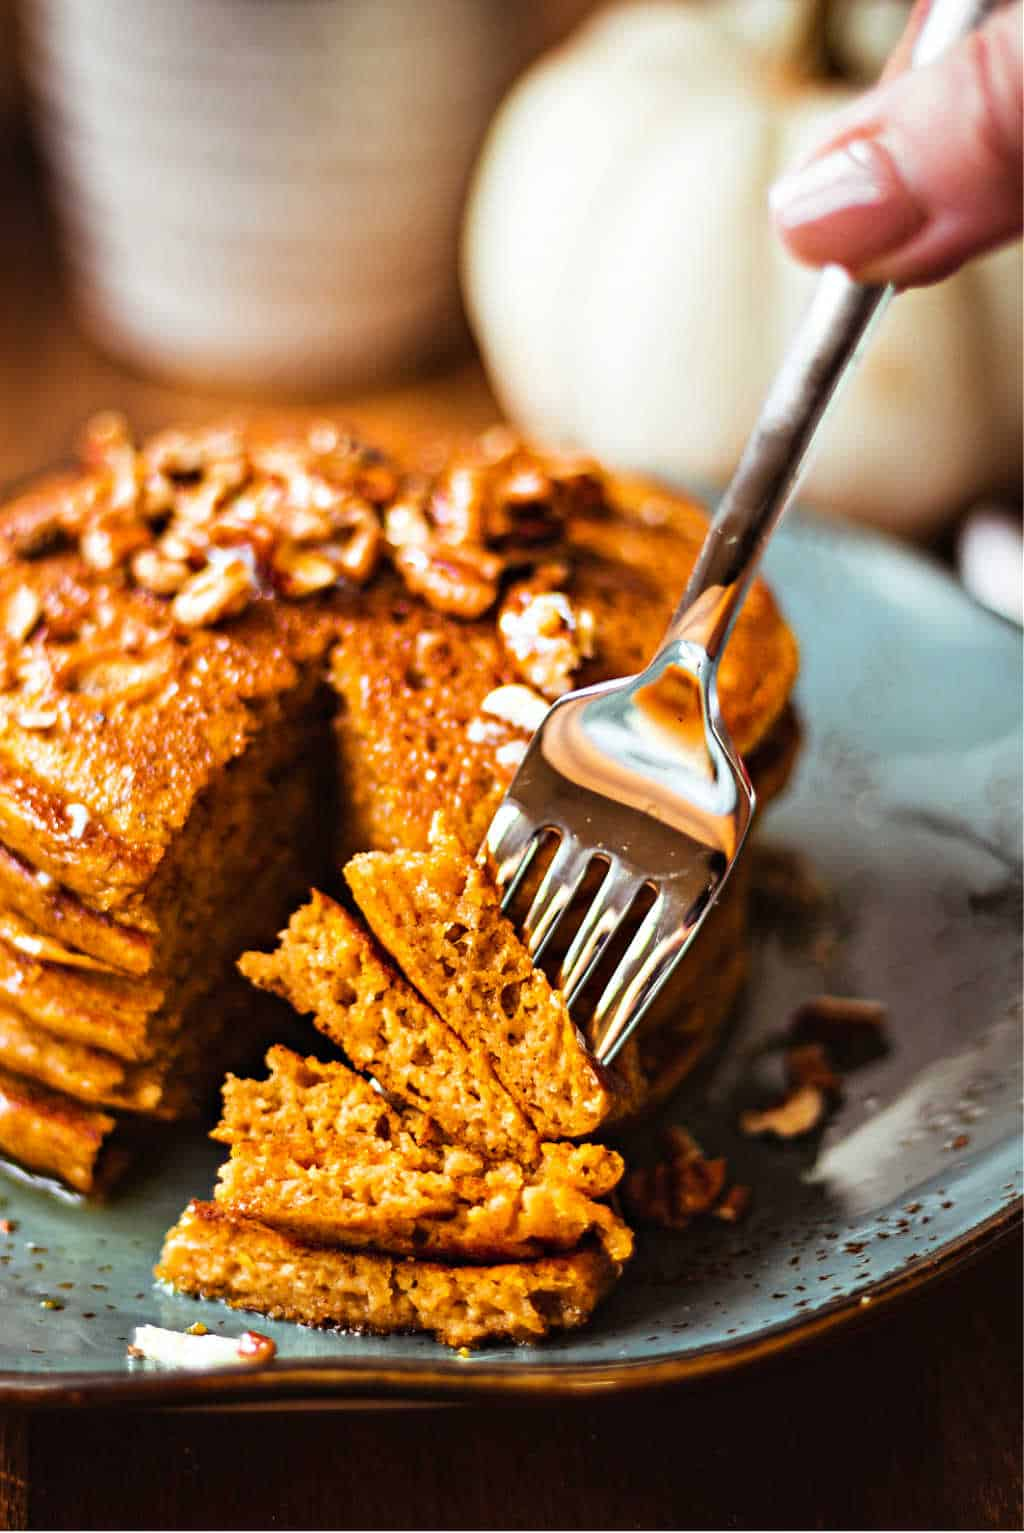 Pumpkin Spice Pancakes speared with a fork